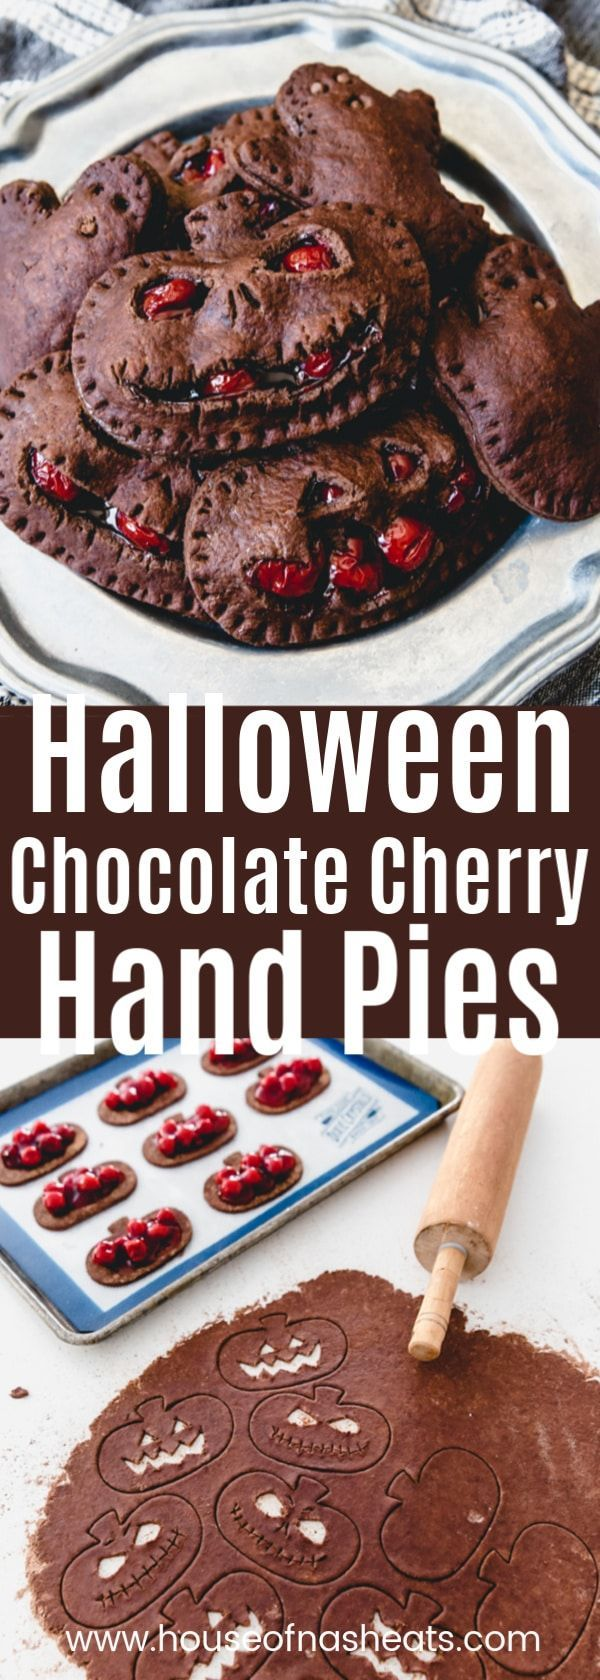 These Halloween Chocolate Cherry Hand Pies are an easy and frightfully fun trea…